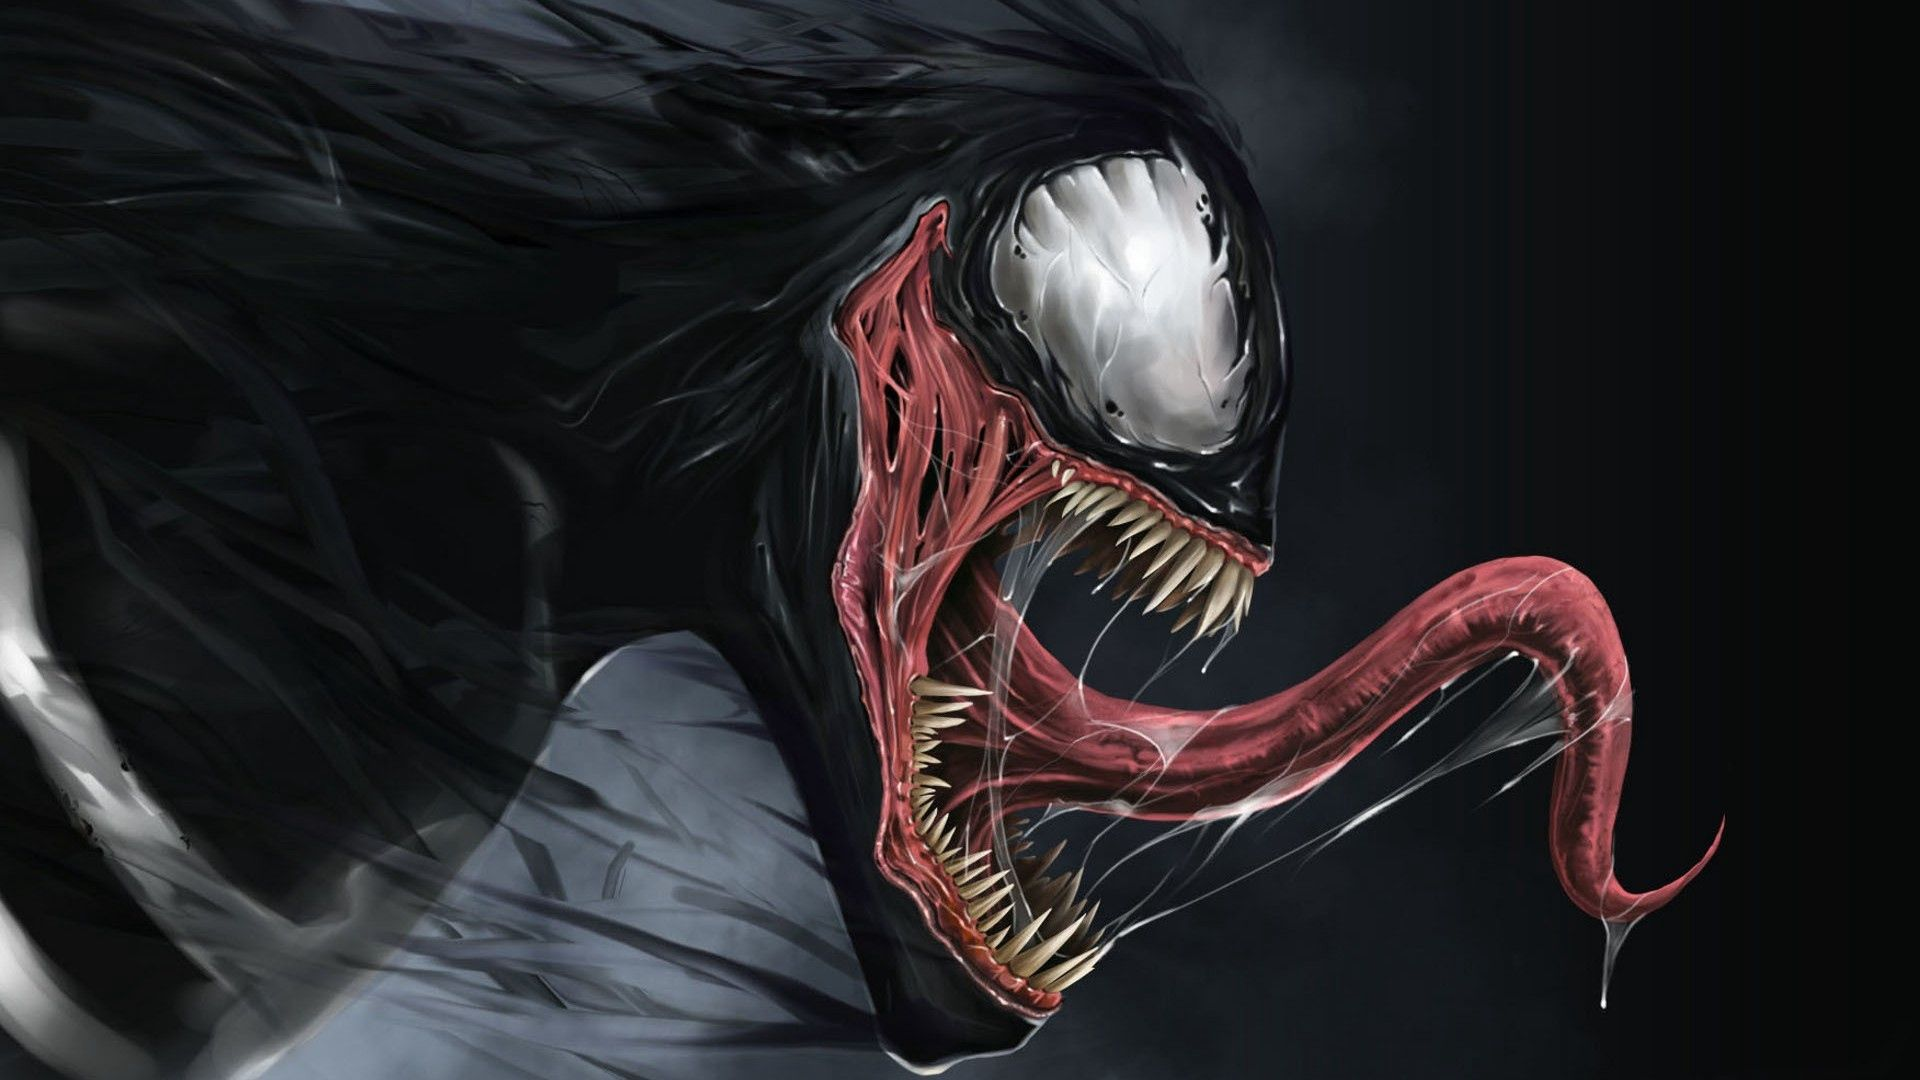 venom wallpaper hd, red venom